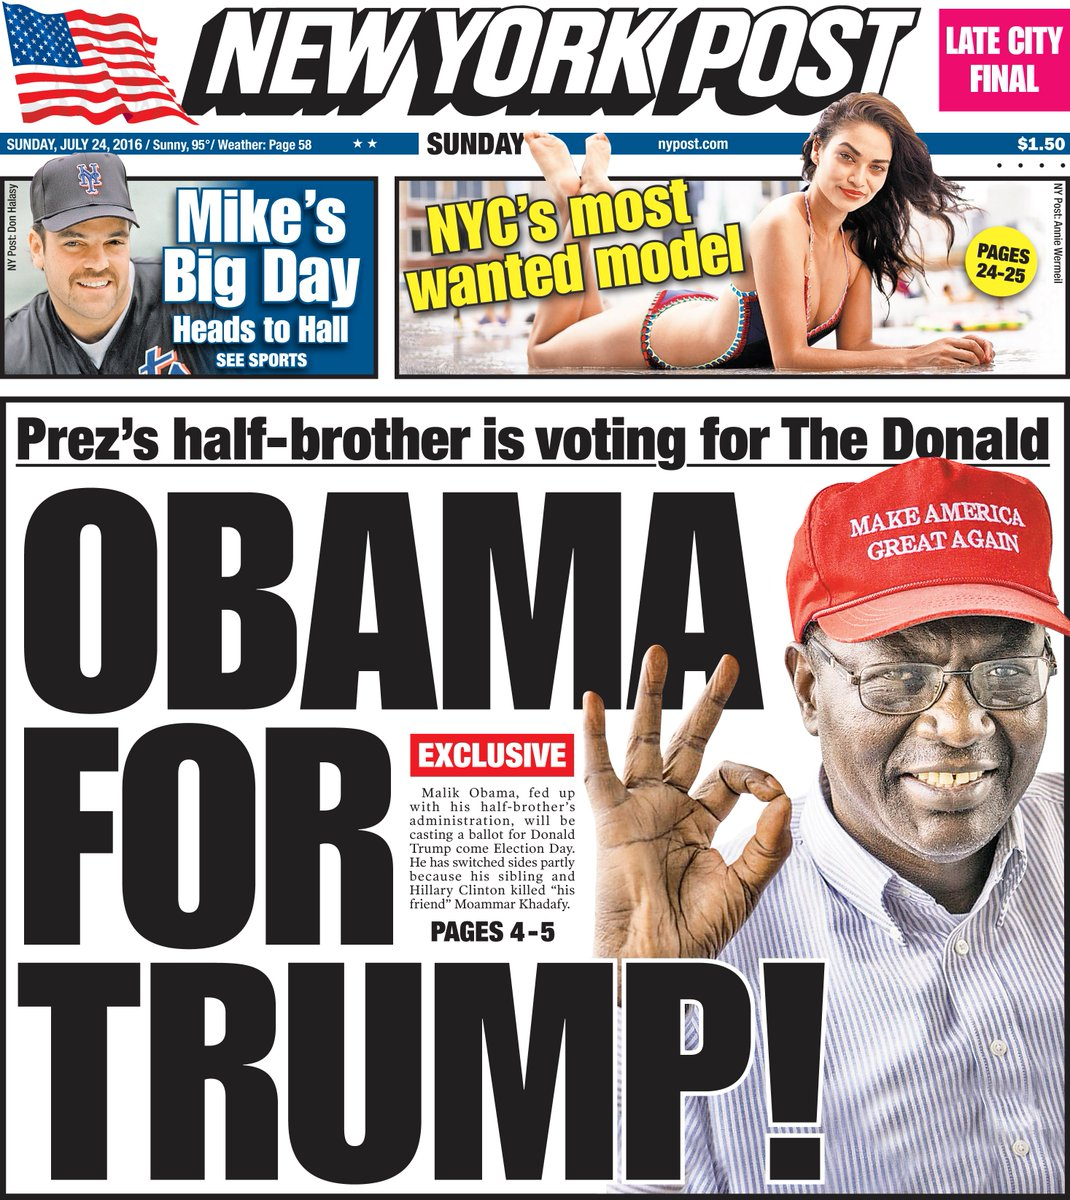 EXCLUSIVE: Why President Obama's half-brother says he'll be voting for Donald Trump